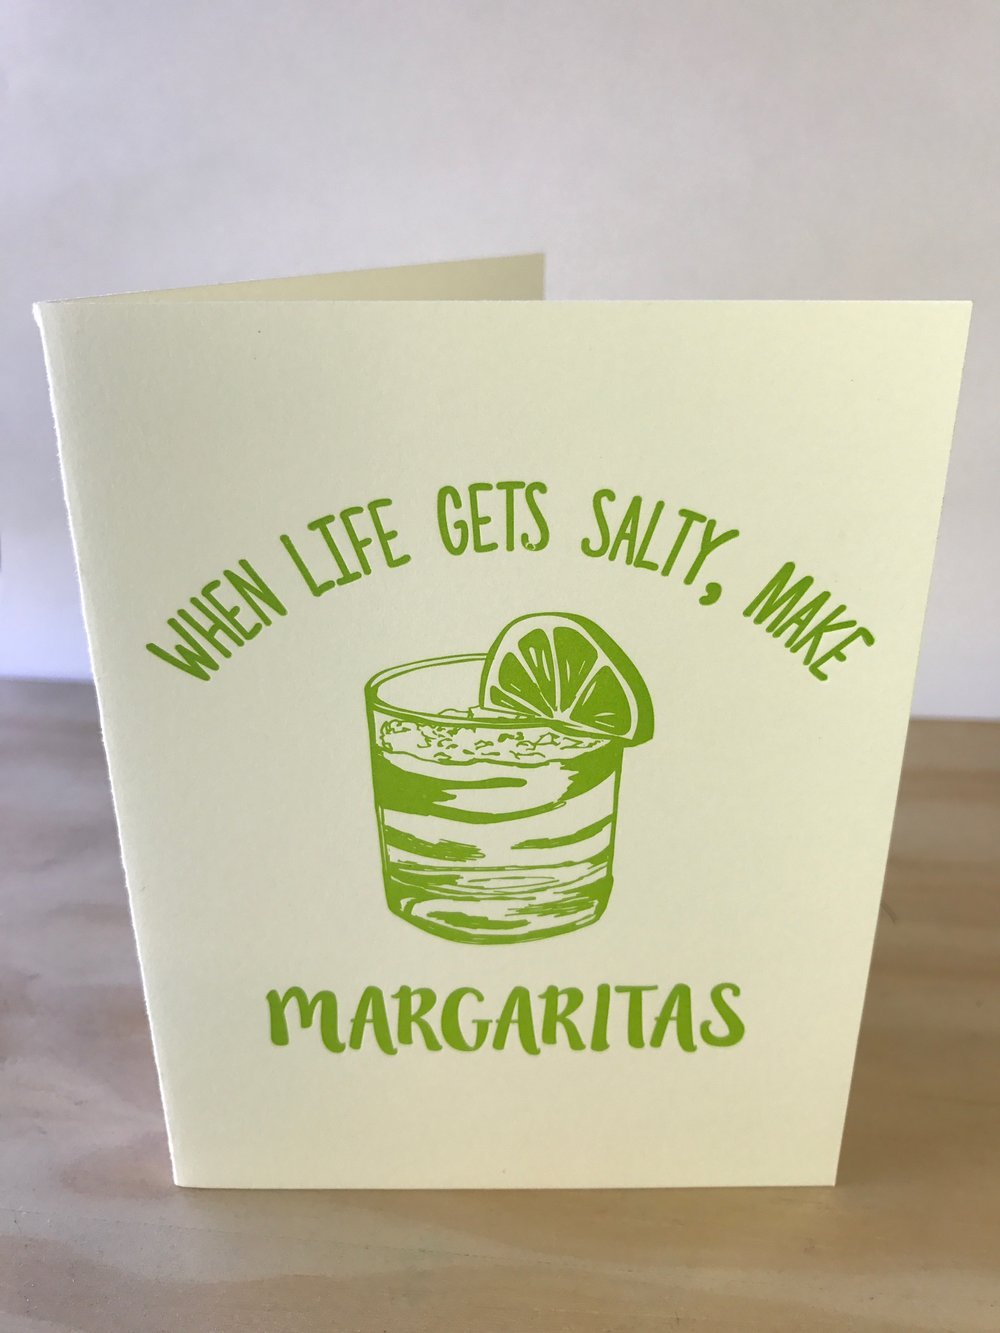 When Life Gets Salty Make Margaritas